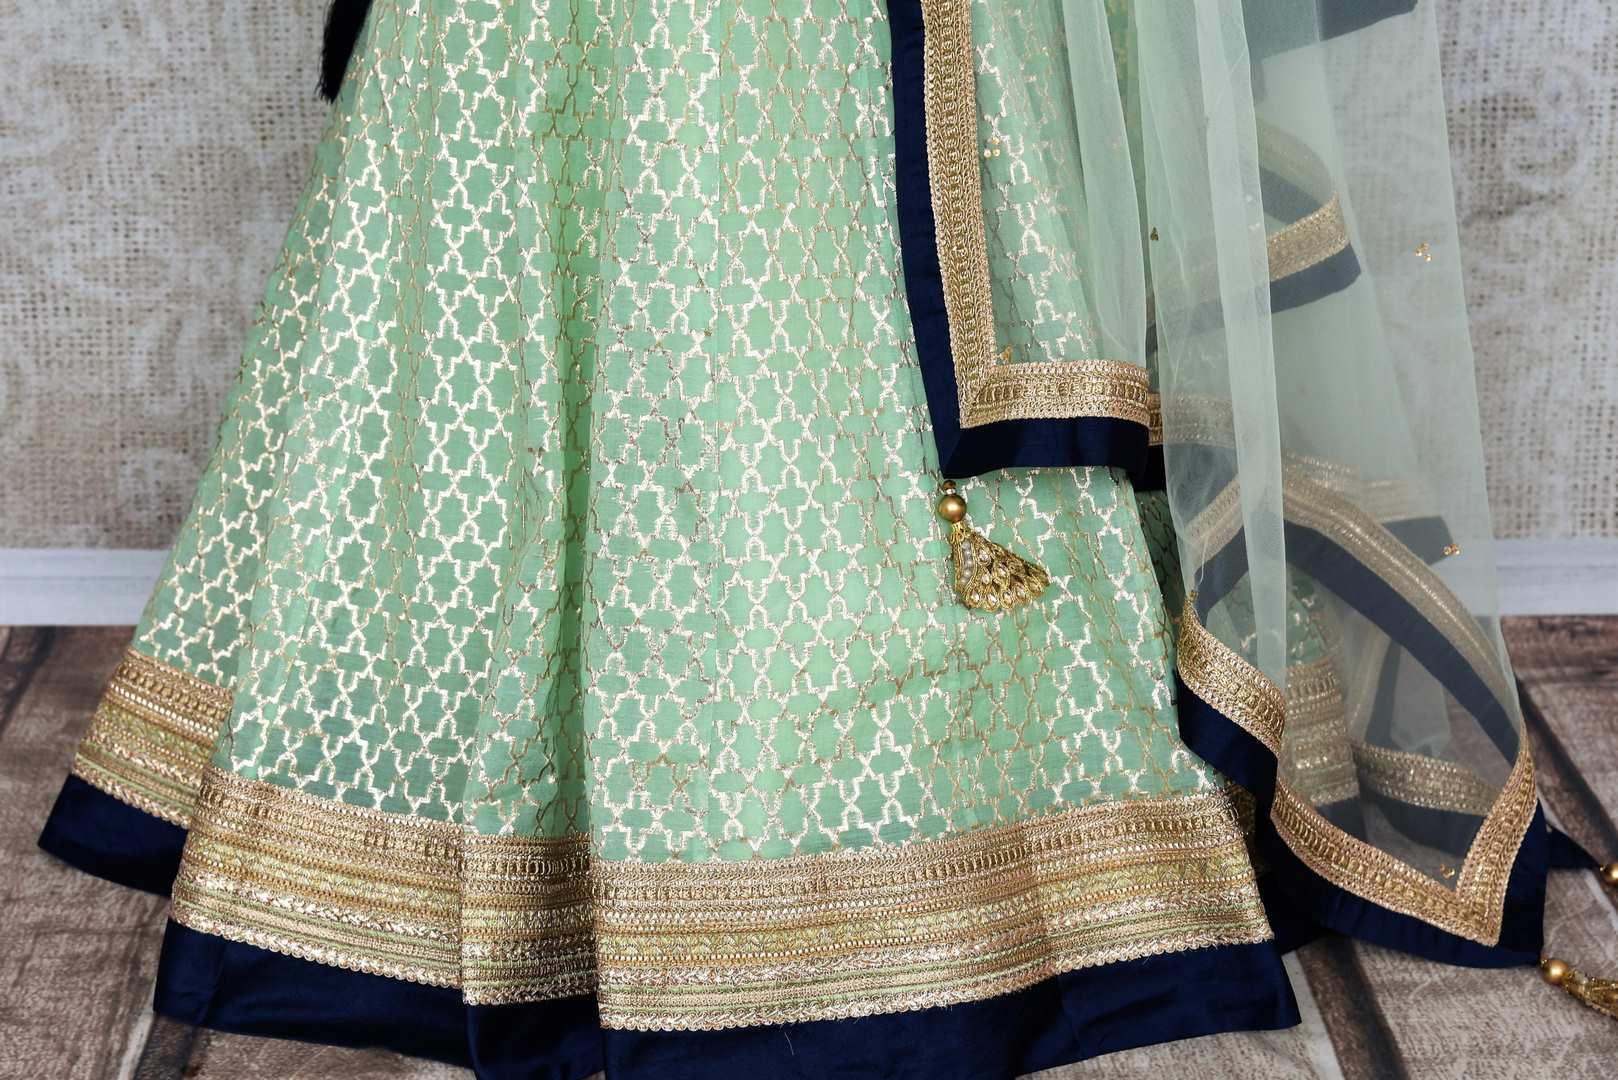 Buy pastel green and blue embroidered chanderi lehenga with dupatta online in USA. Add brilliance to your Indian wedding look with an exquisite range of designer wedding lehengas available at Pure Elegance exclusive clothing store in USA or shop online.-skirt